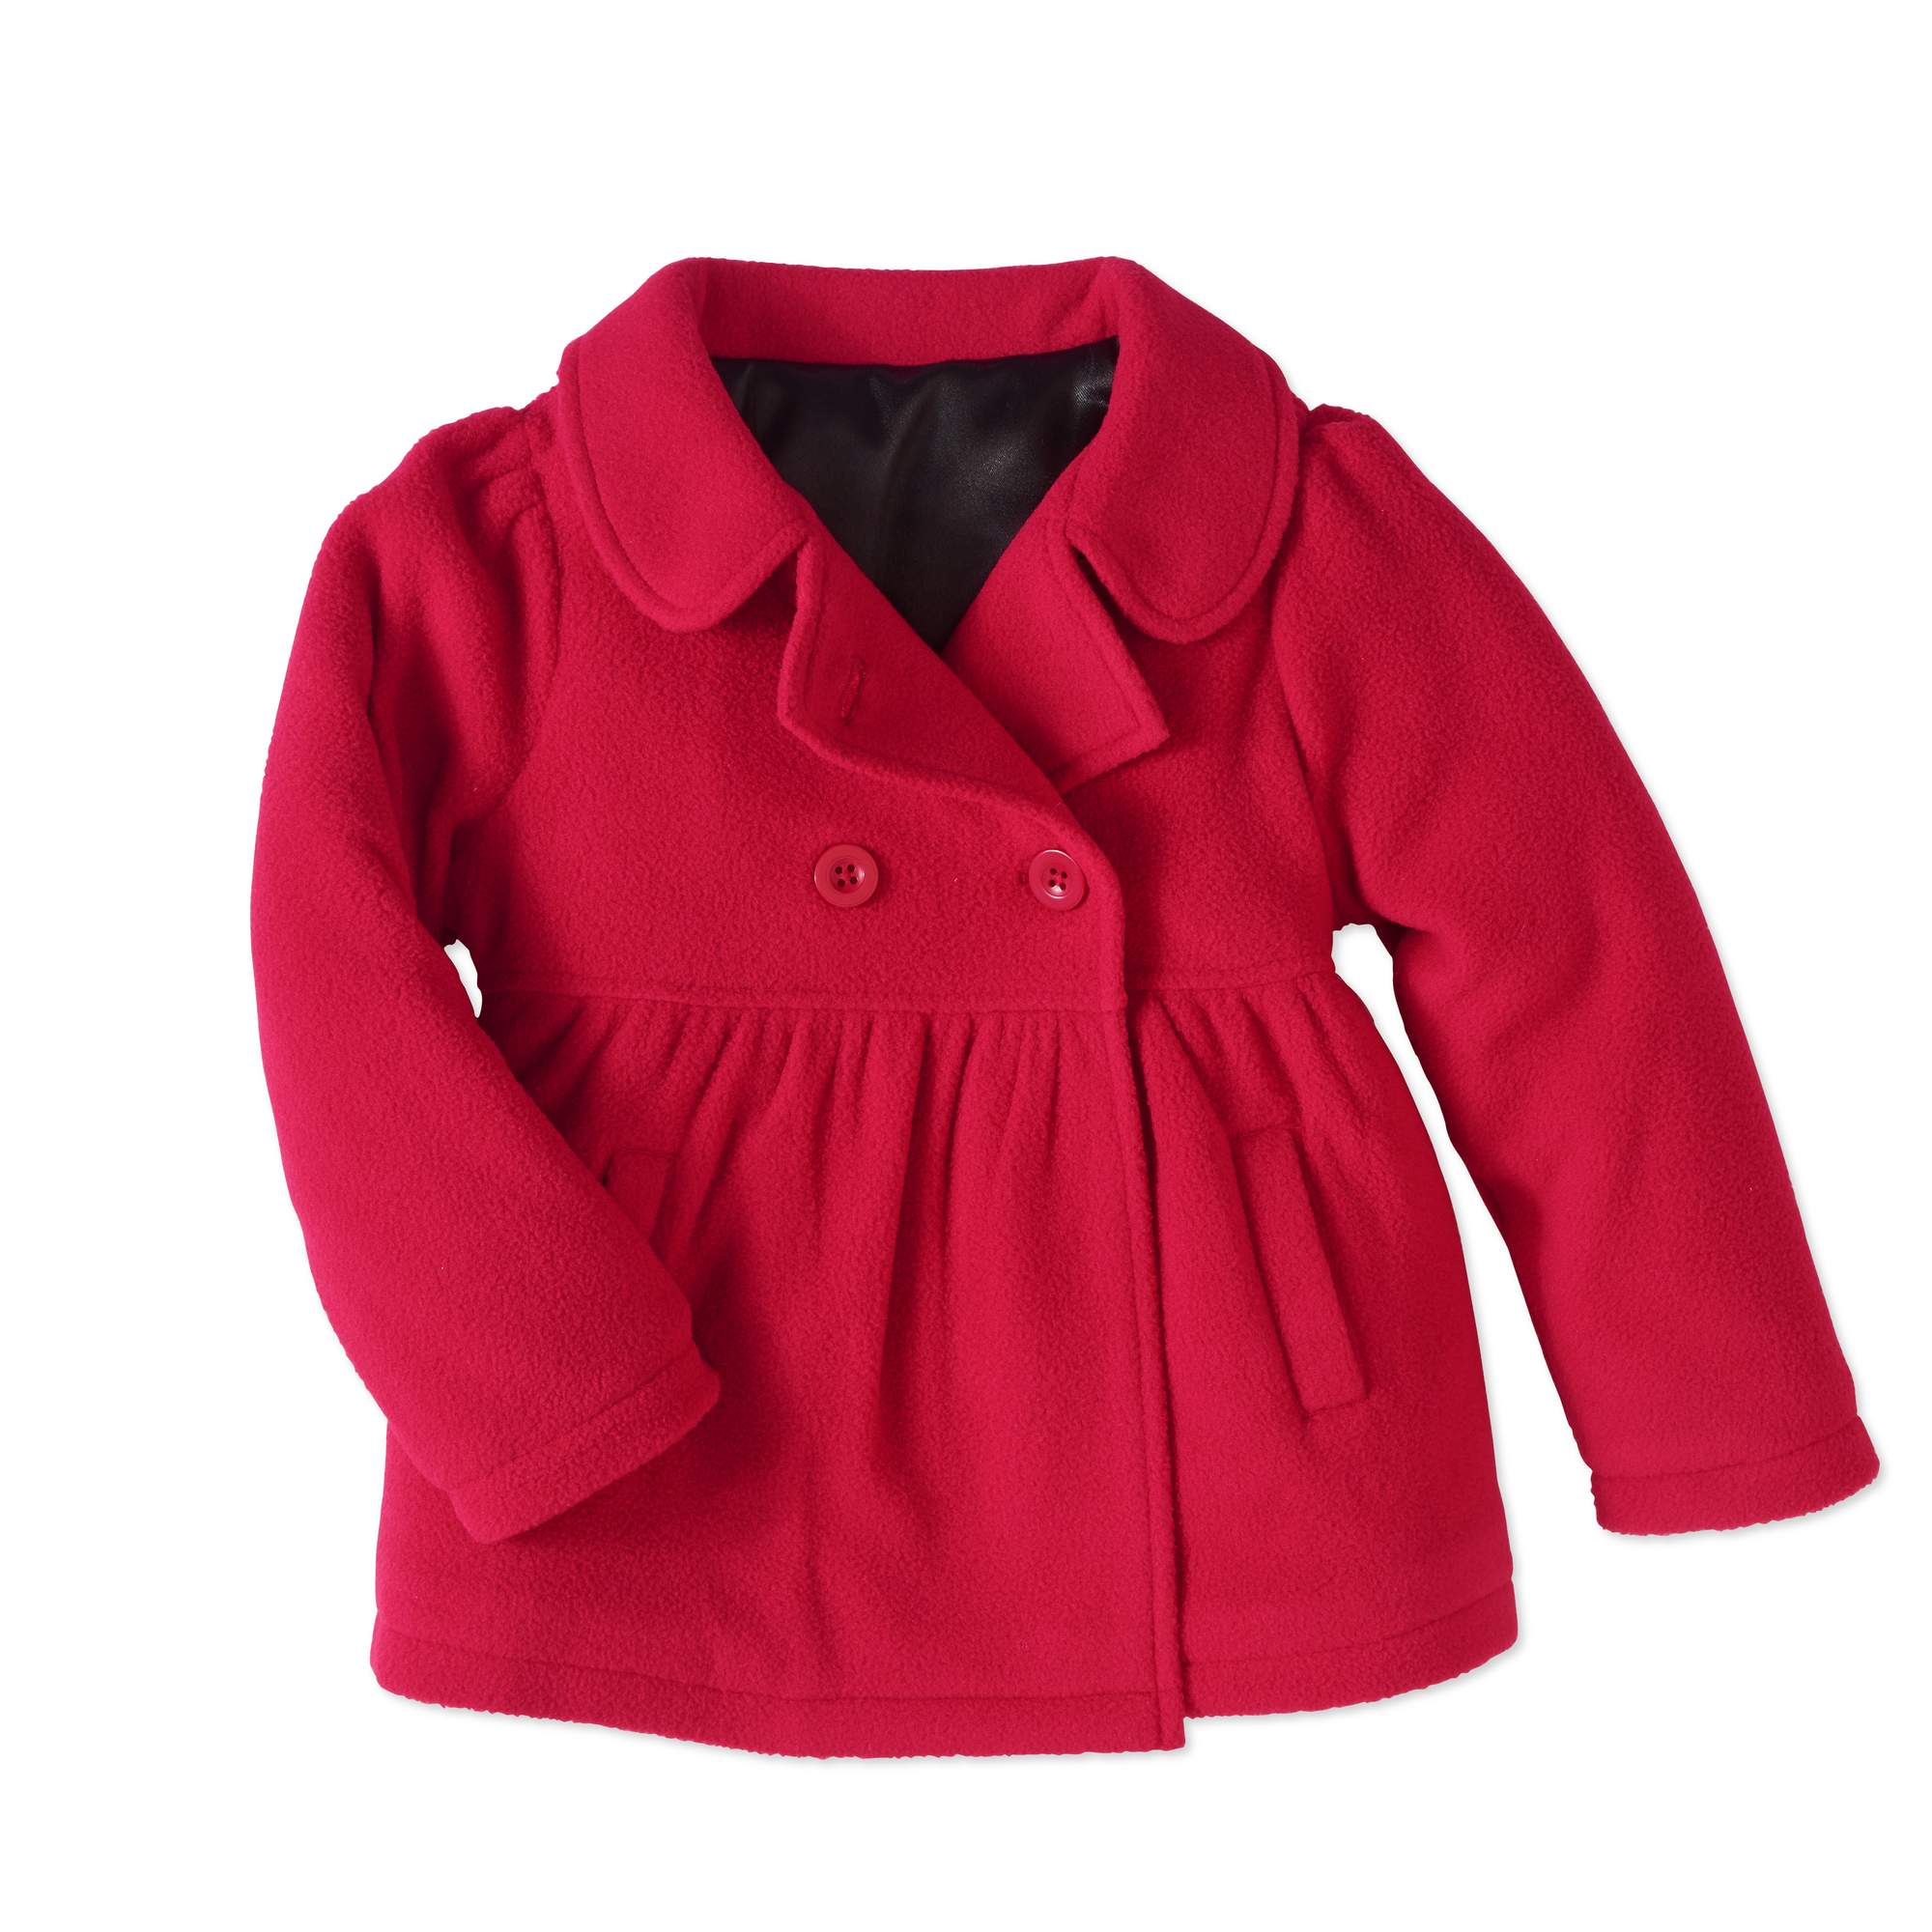 Healthtex Baby Toddler Girls' Essential Peacoat Jacket